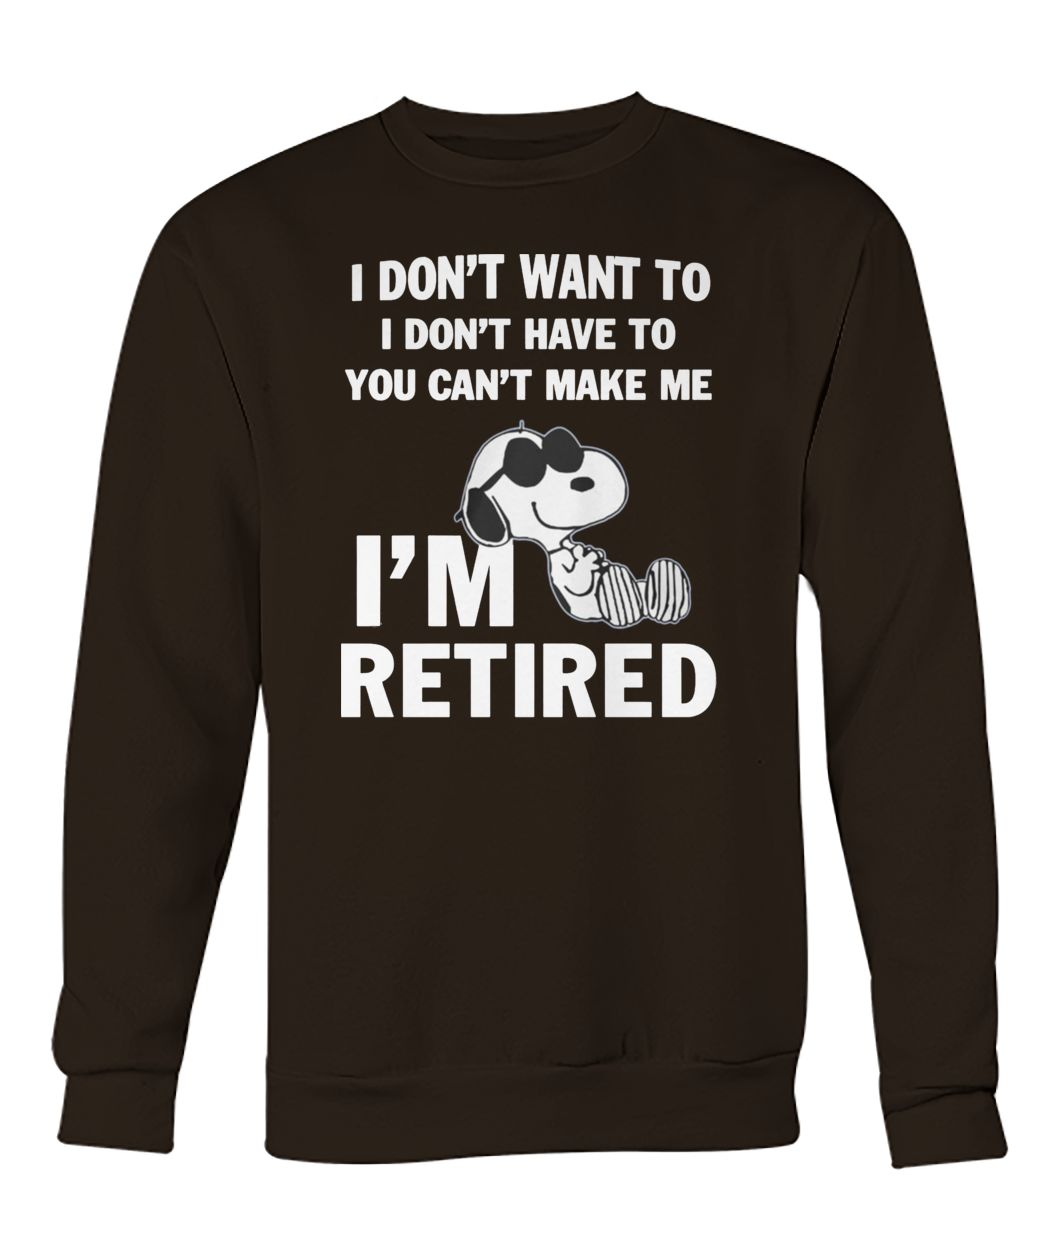 Snoopy I don't want to I don't have to you can't make me I'm retired crew neck sweatshirt